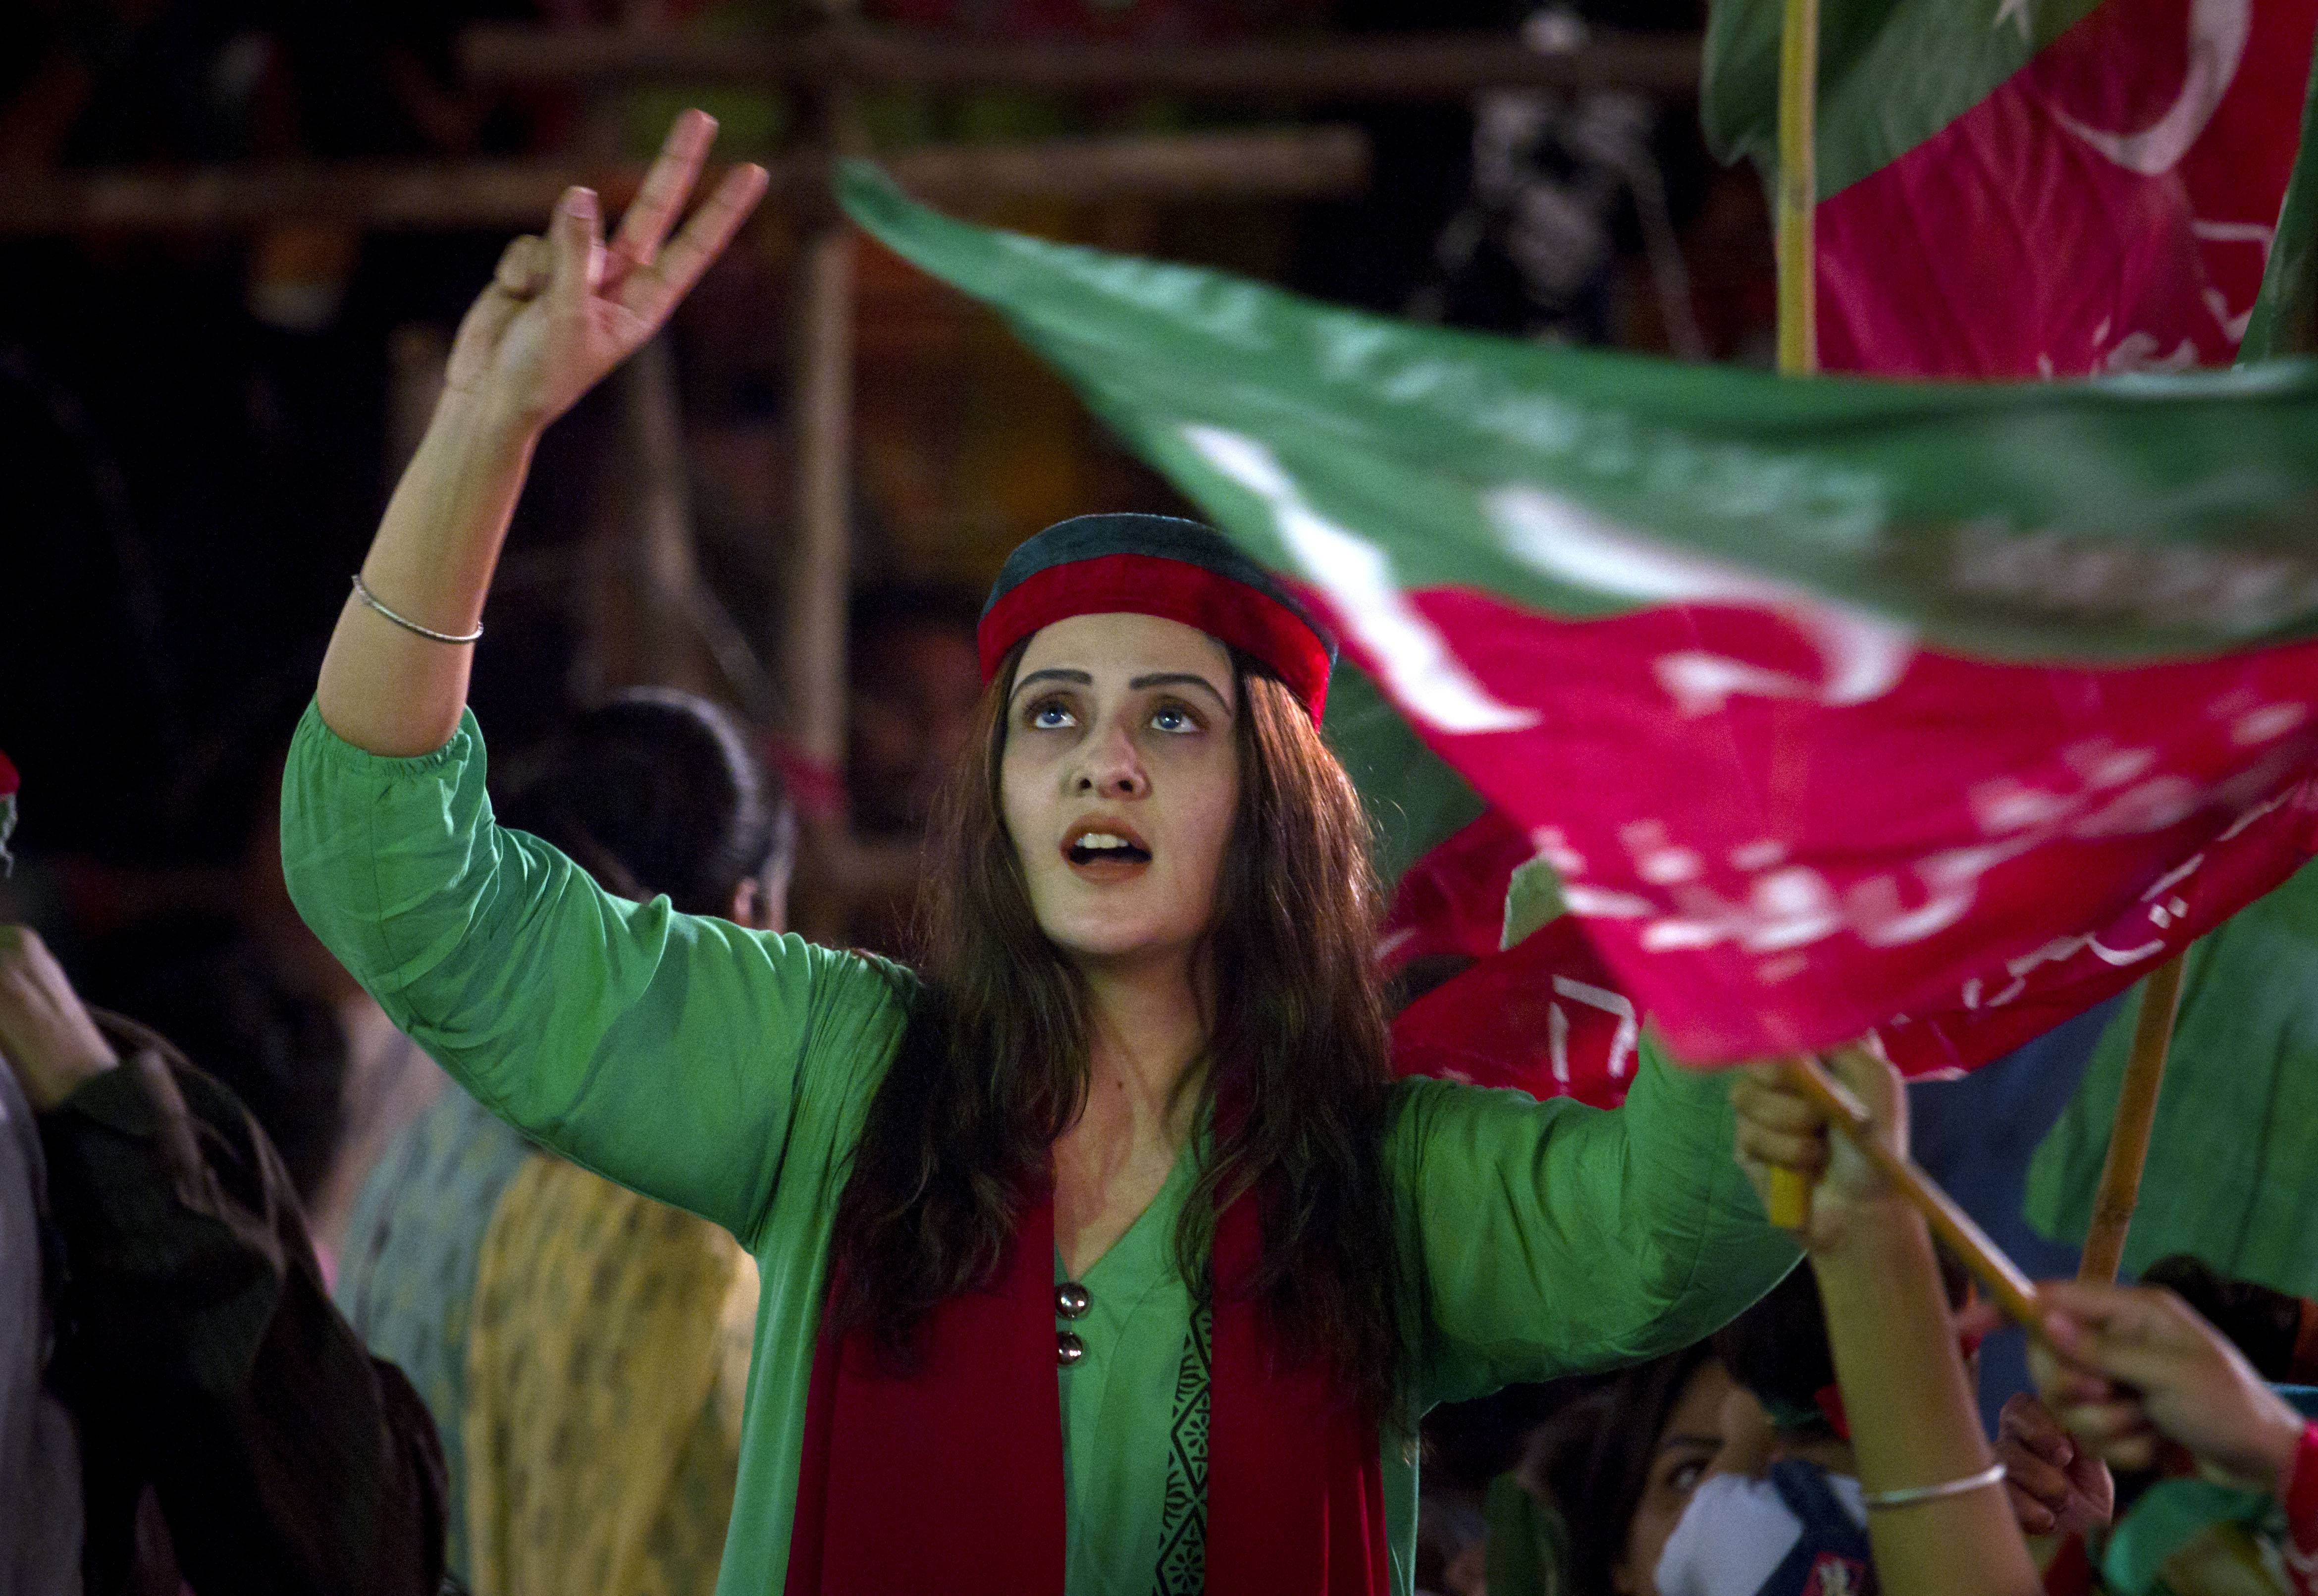 A woman supporter of Pakistan's cricketer-turned-politician Imran Khan flashes victory signs Saturday during a protest near the parliament building in Islamabad, Pakistan.